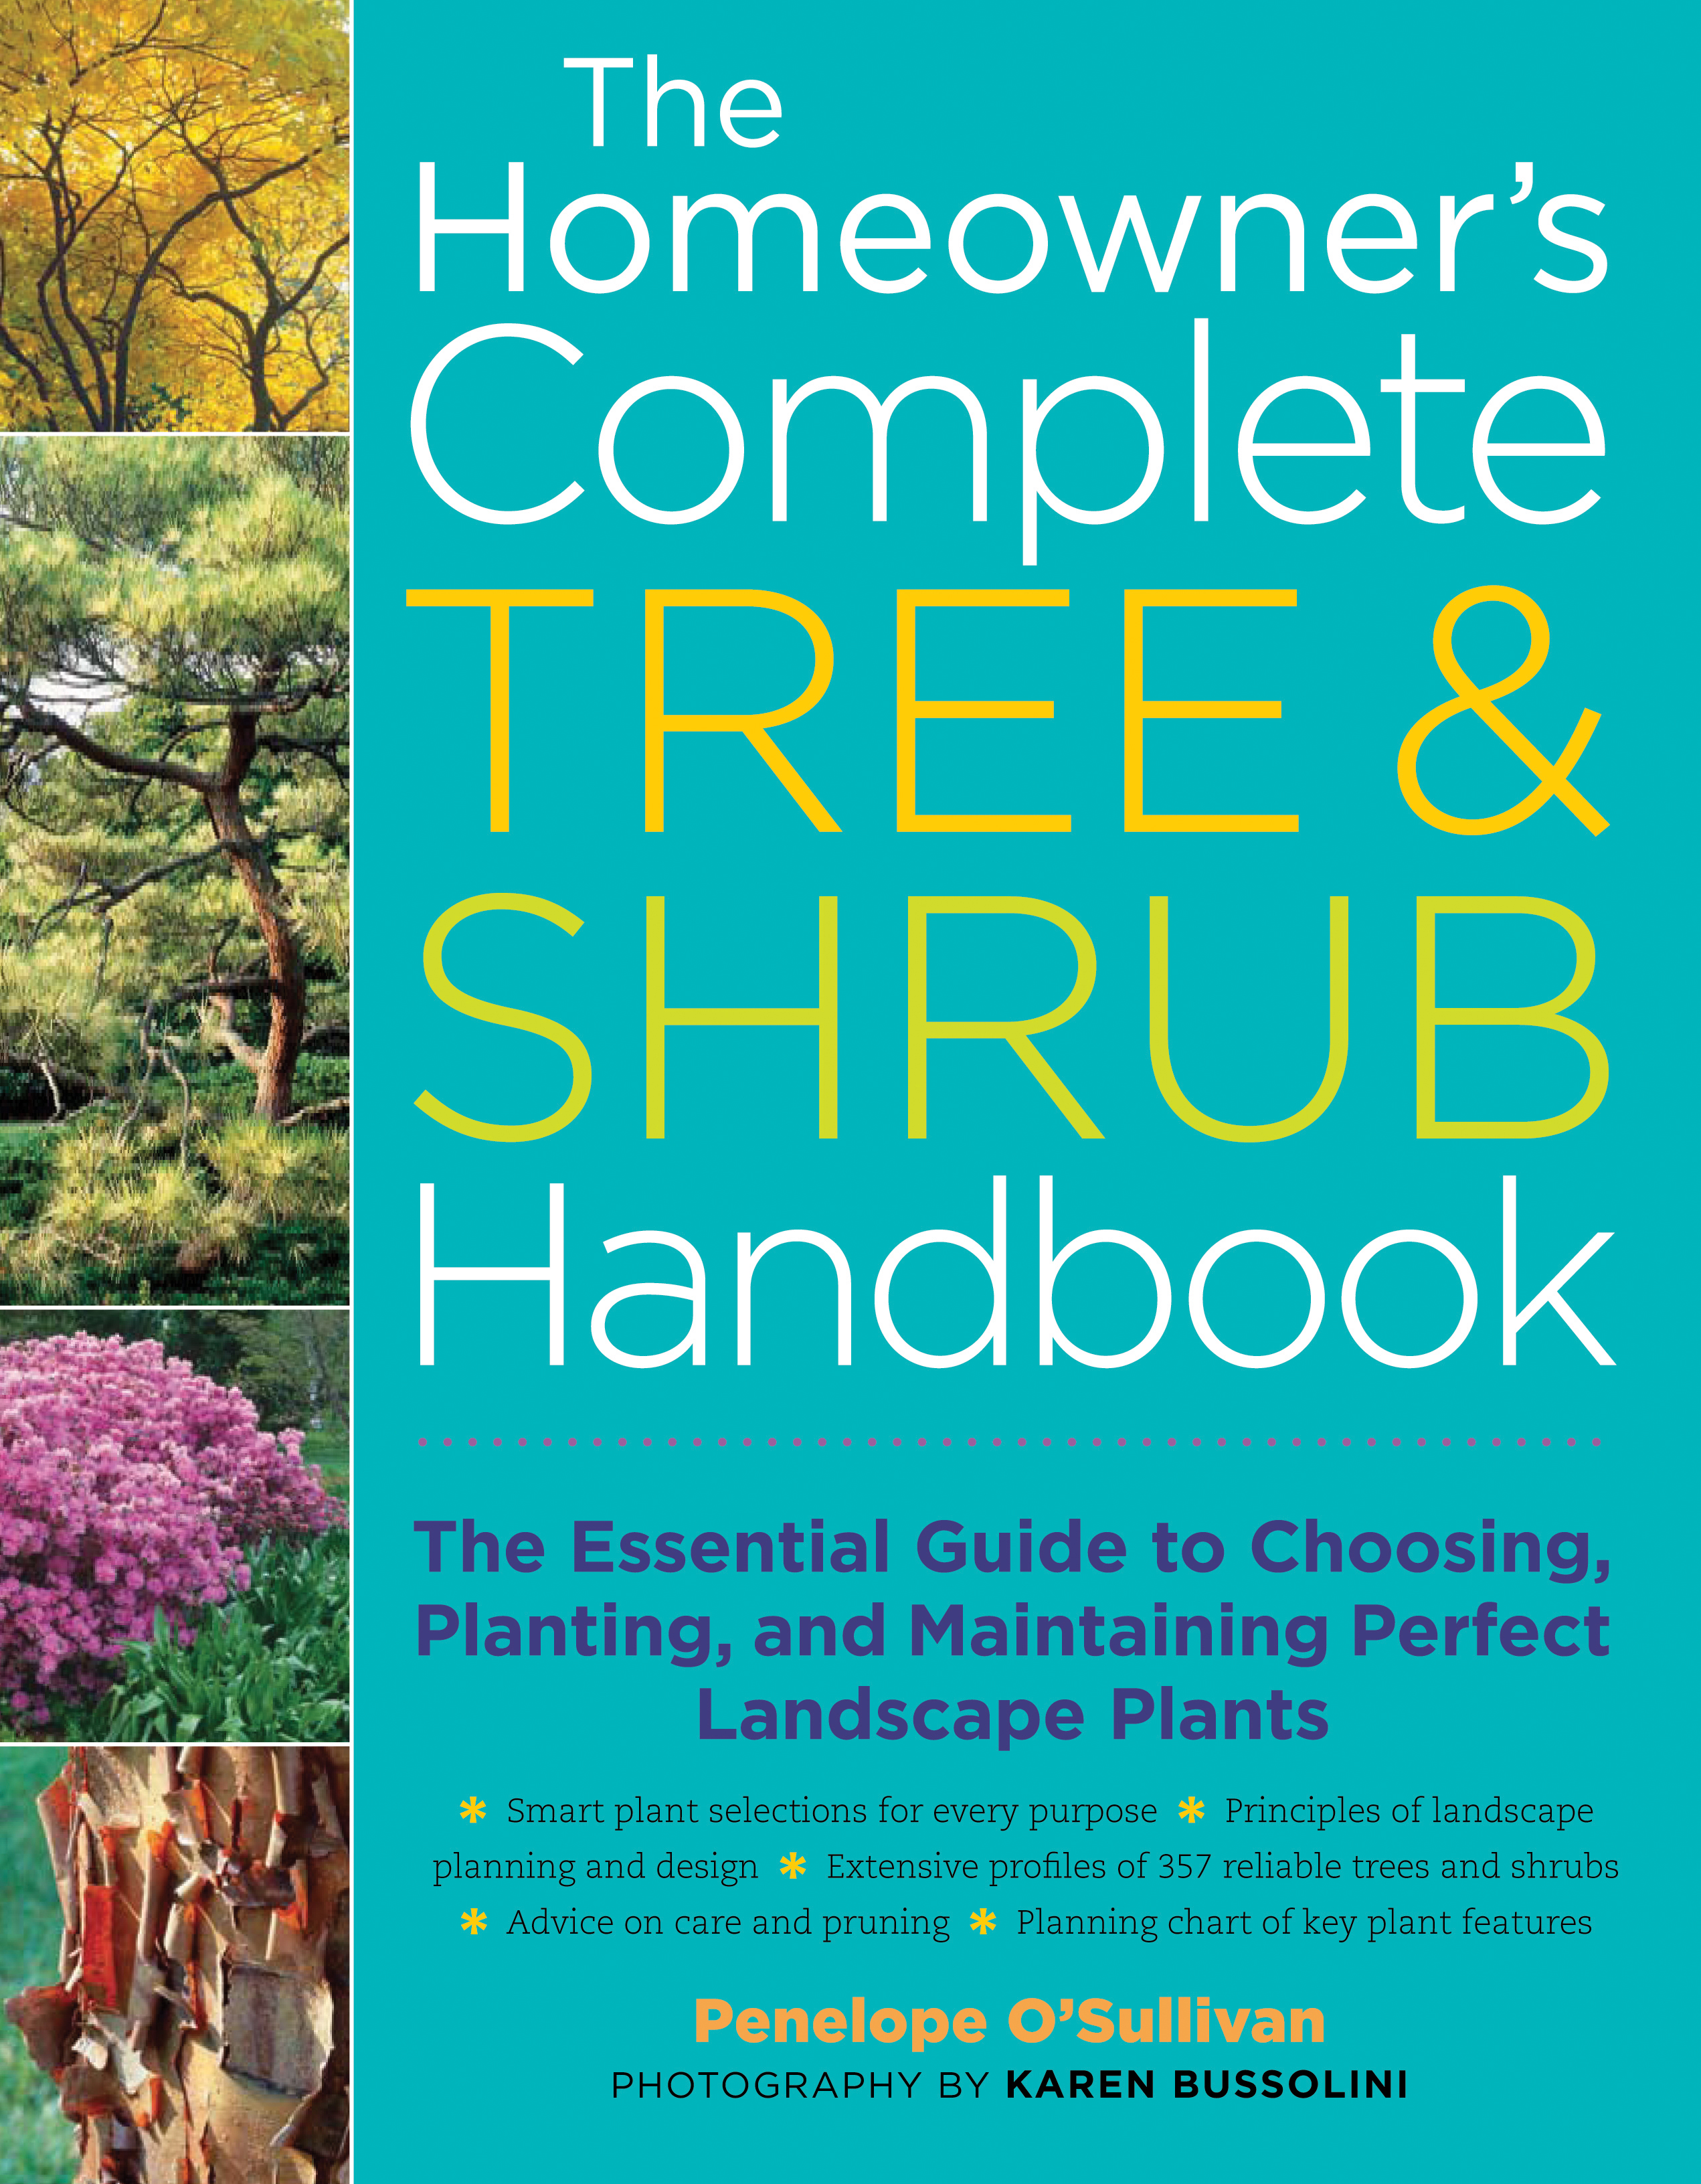 The Homeowner's Complete Tree & Shrub Handbook The Essential Guide to Choosing, Planting, and Maintaining Perfect Landscape Plants - Penelope O'Sullivan